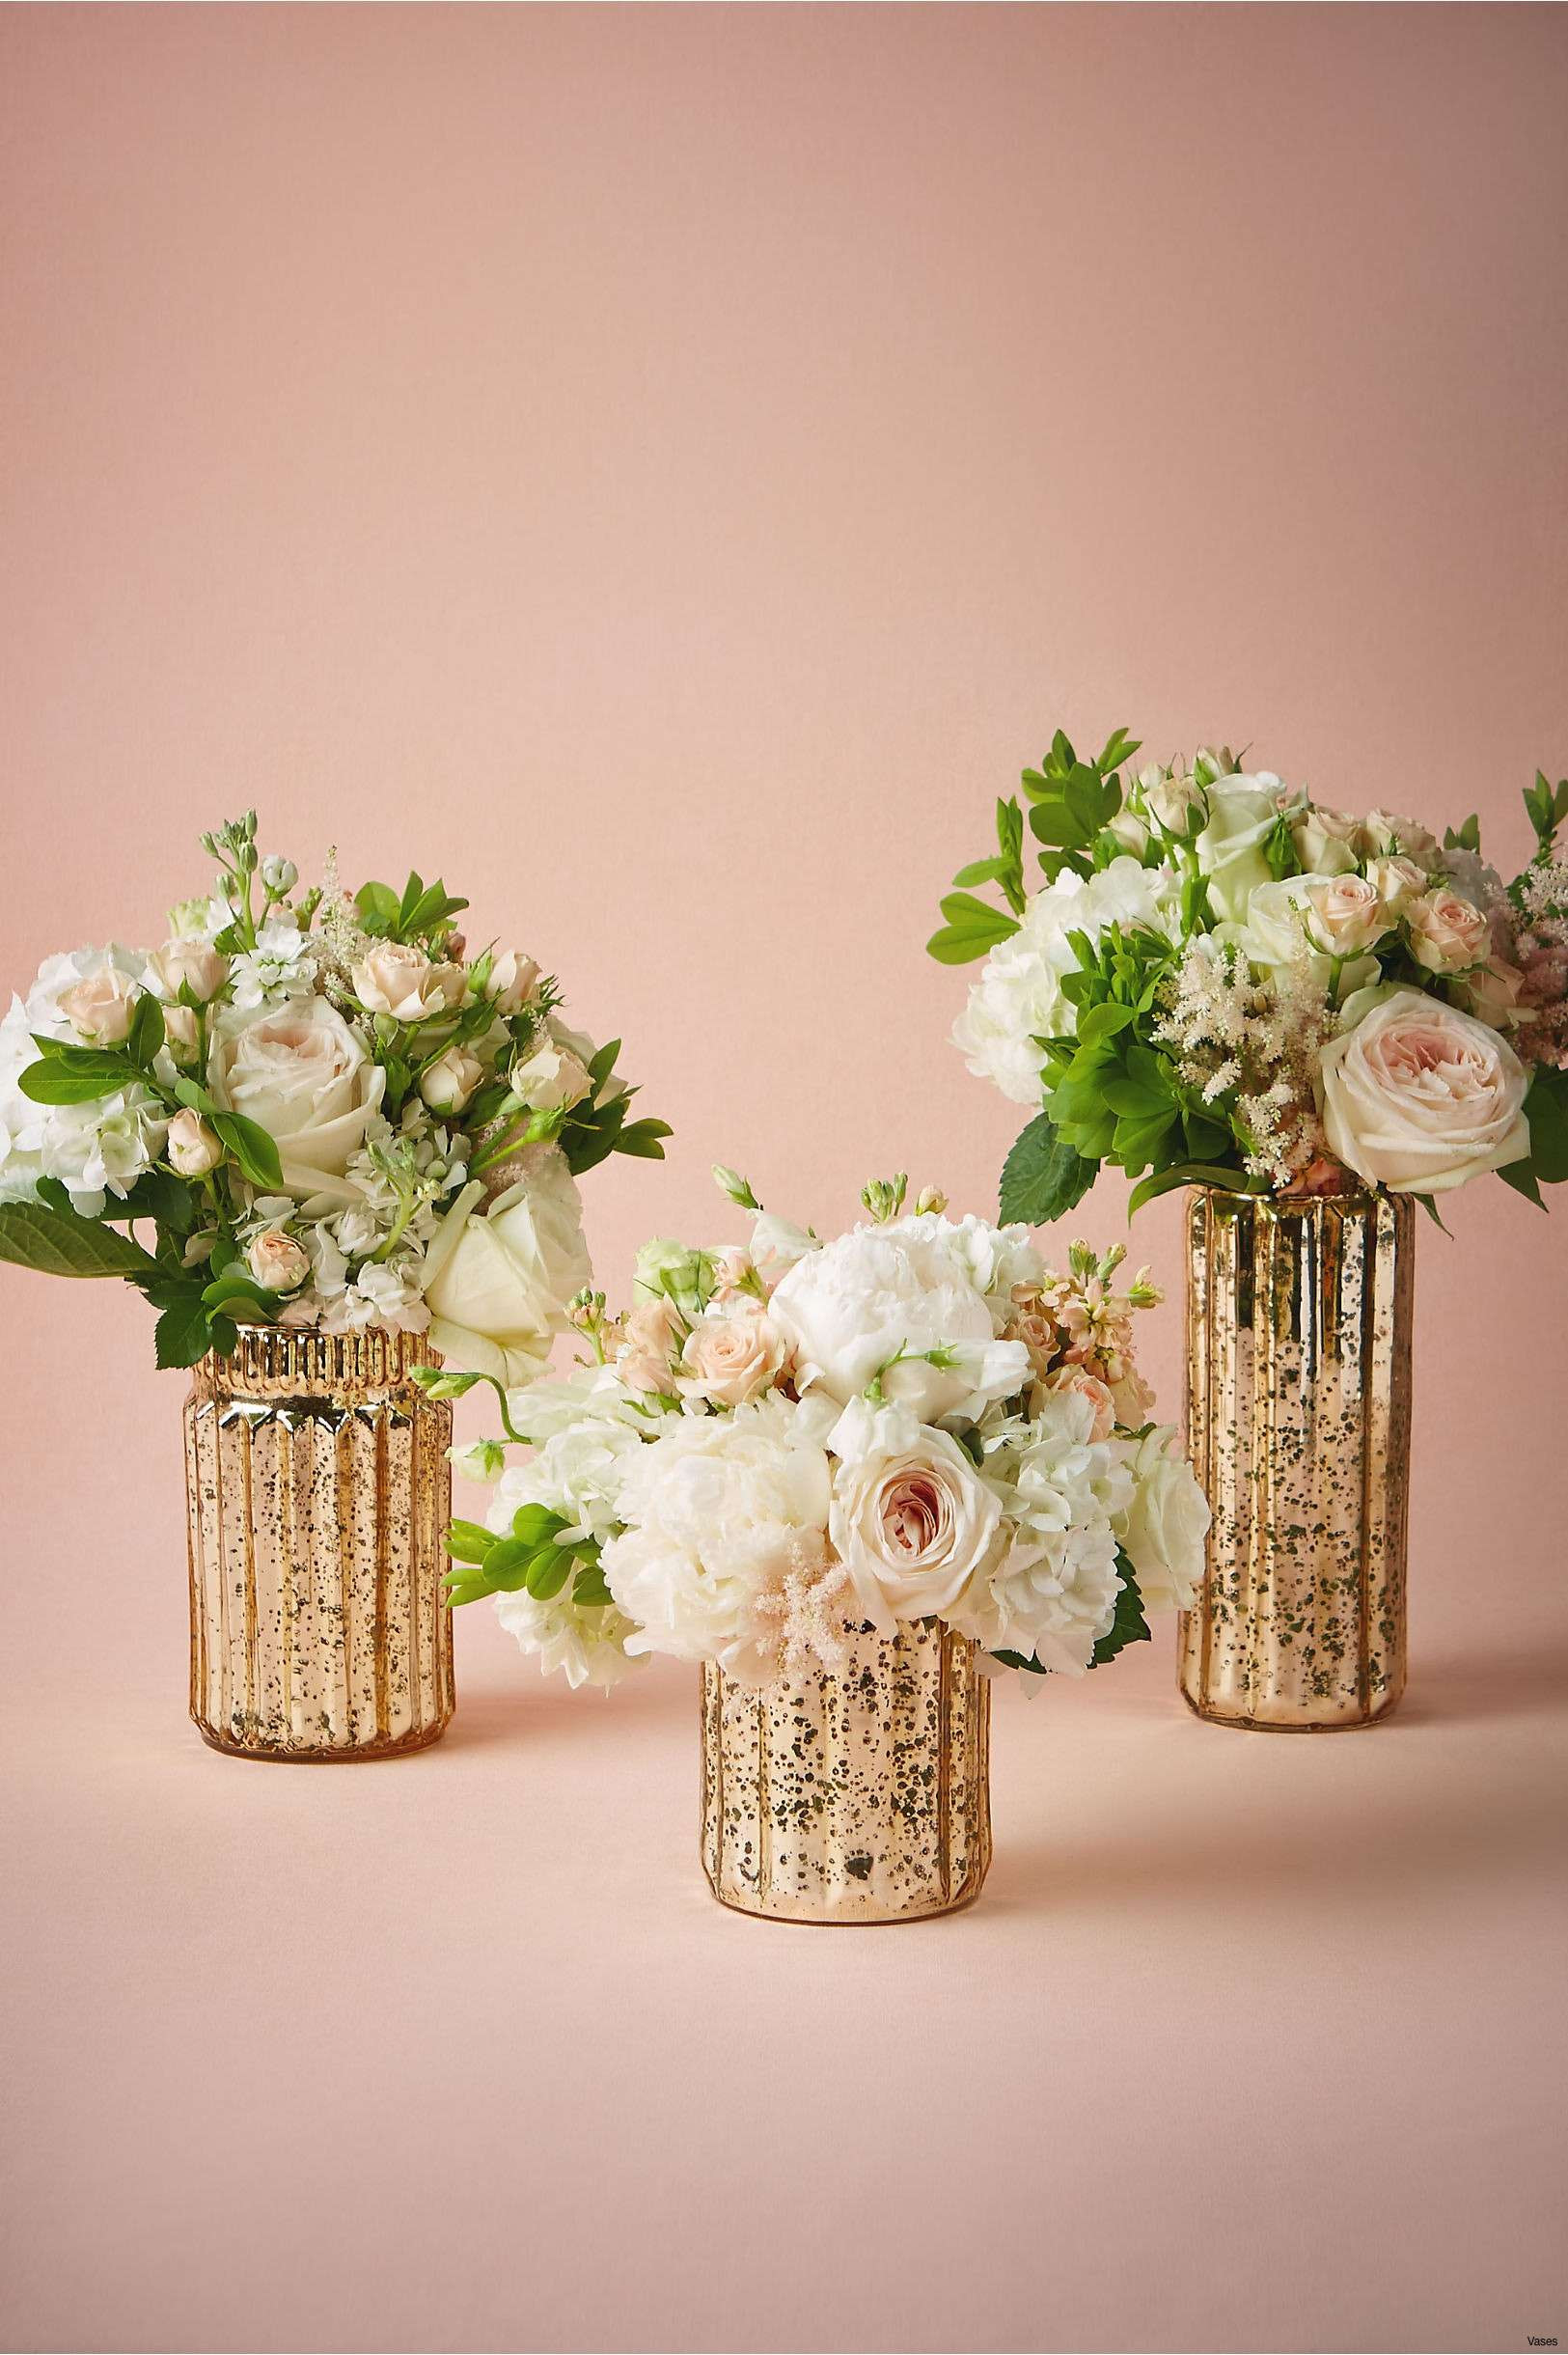 floating flowers in vases centerpieces of 48 lovely flower bouquet ideas gallery amazing home decor ideas with 6625 1h vases mercury glass cylinder vasesi 0d australia design micheals flowers